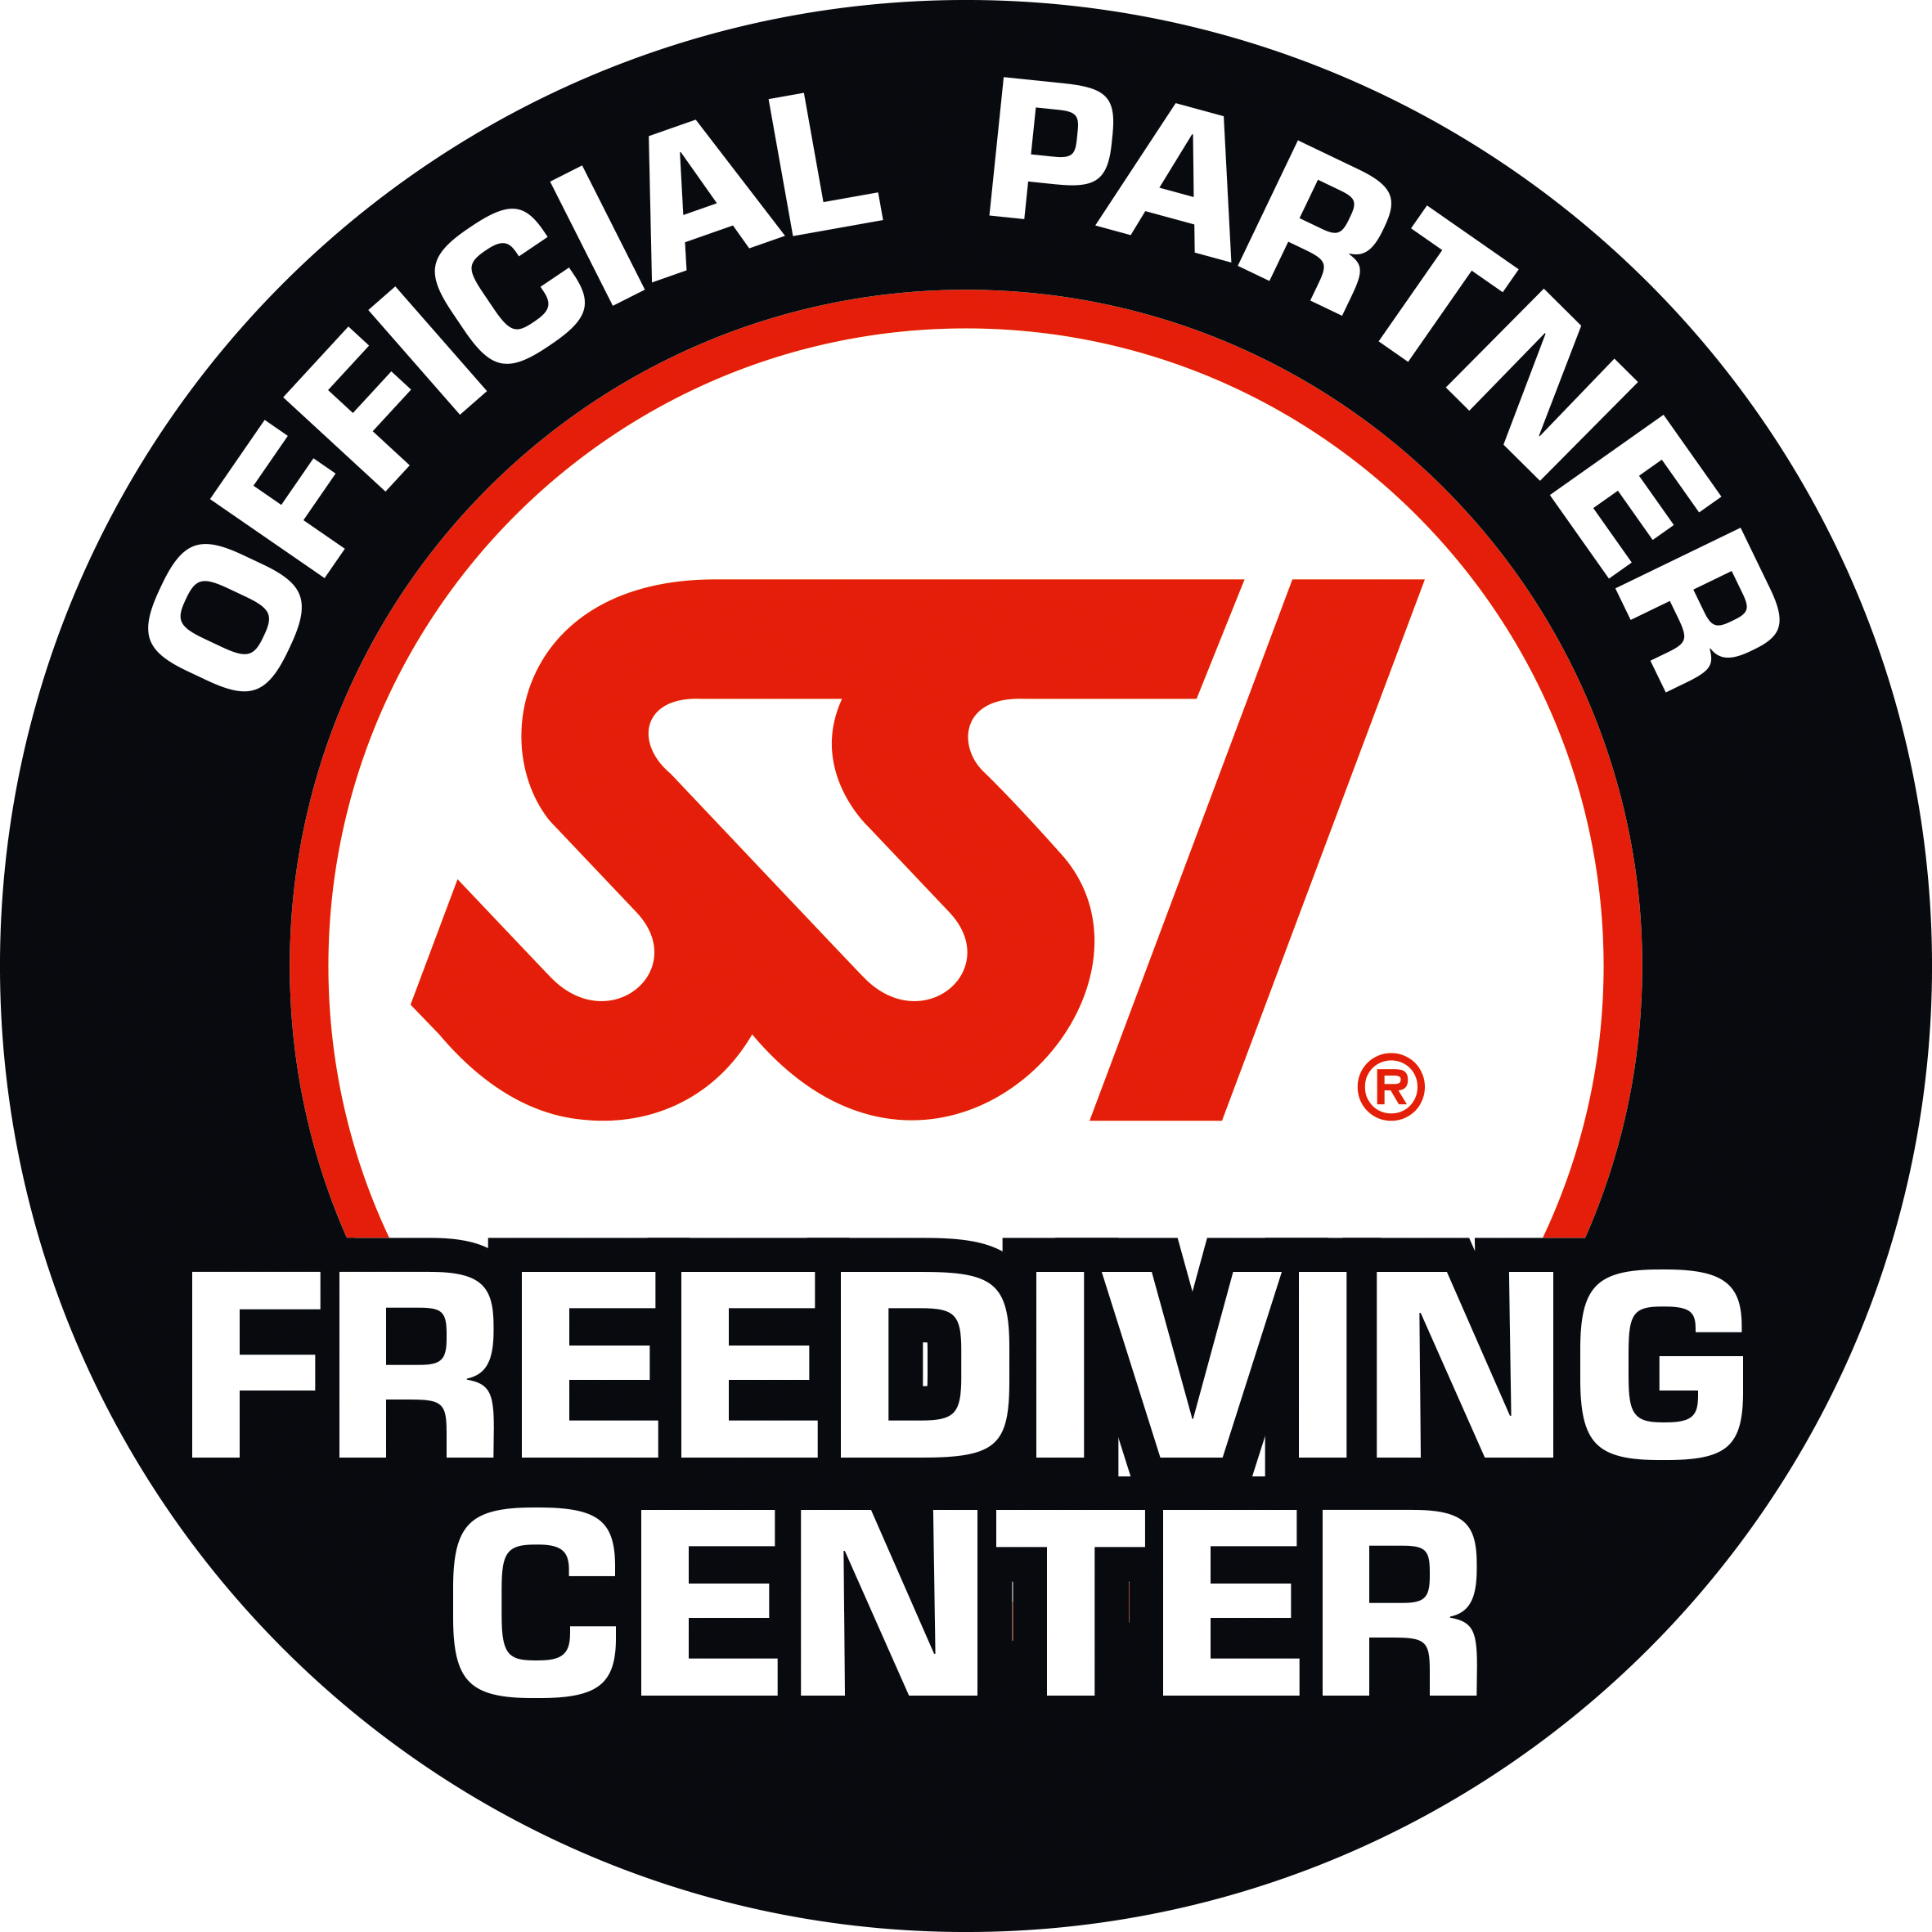 Freediving Center